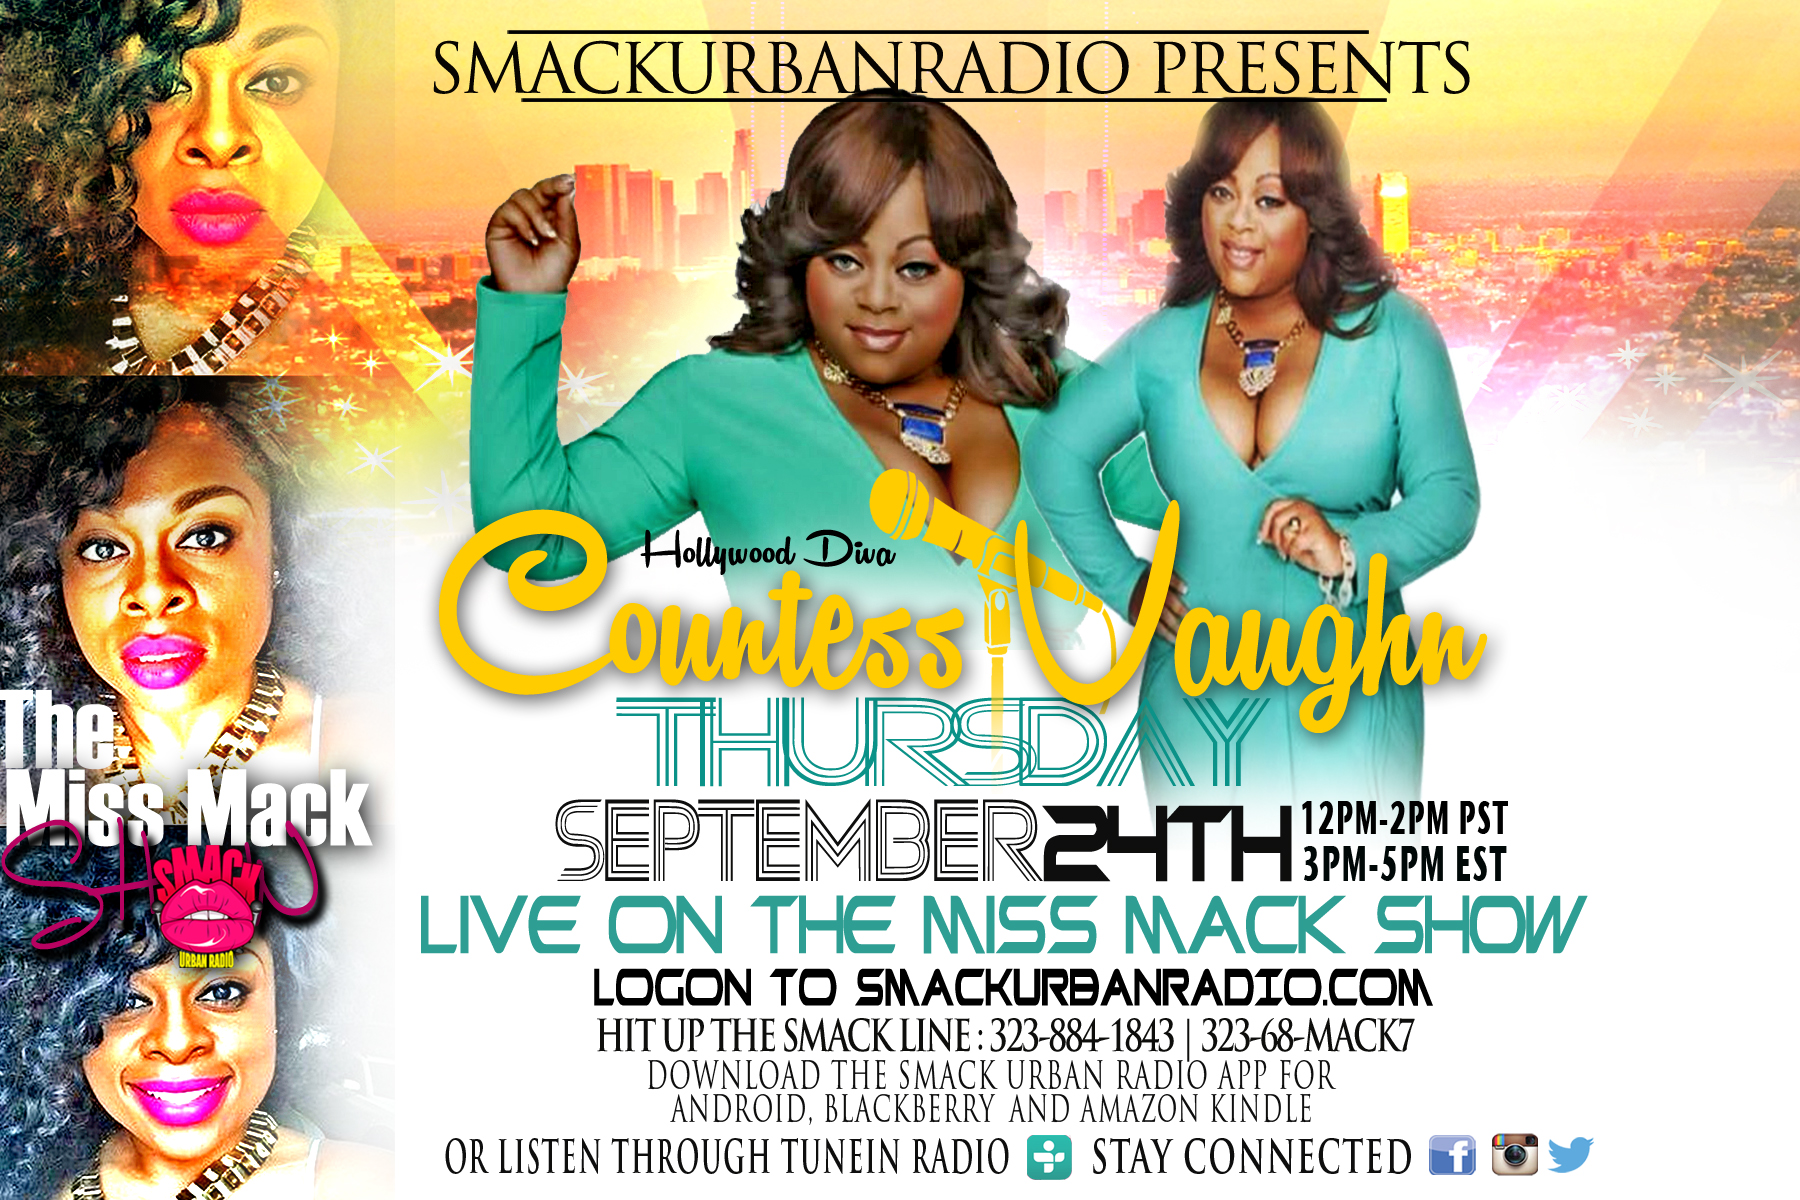 Shannon Mack interviews countess Vaughn